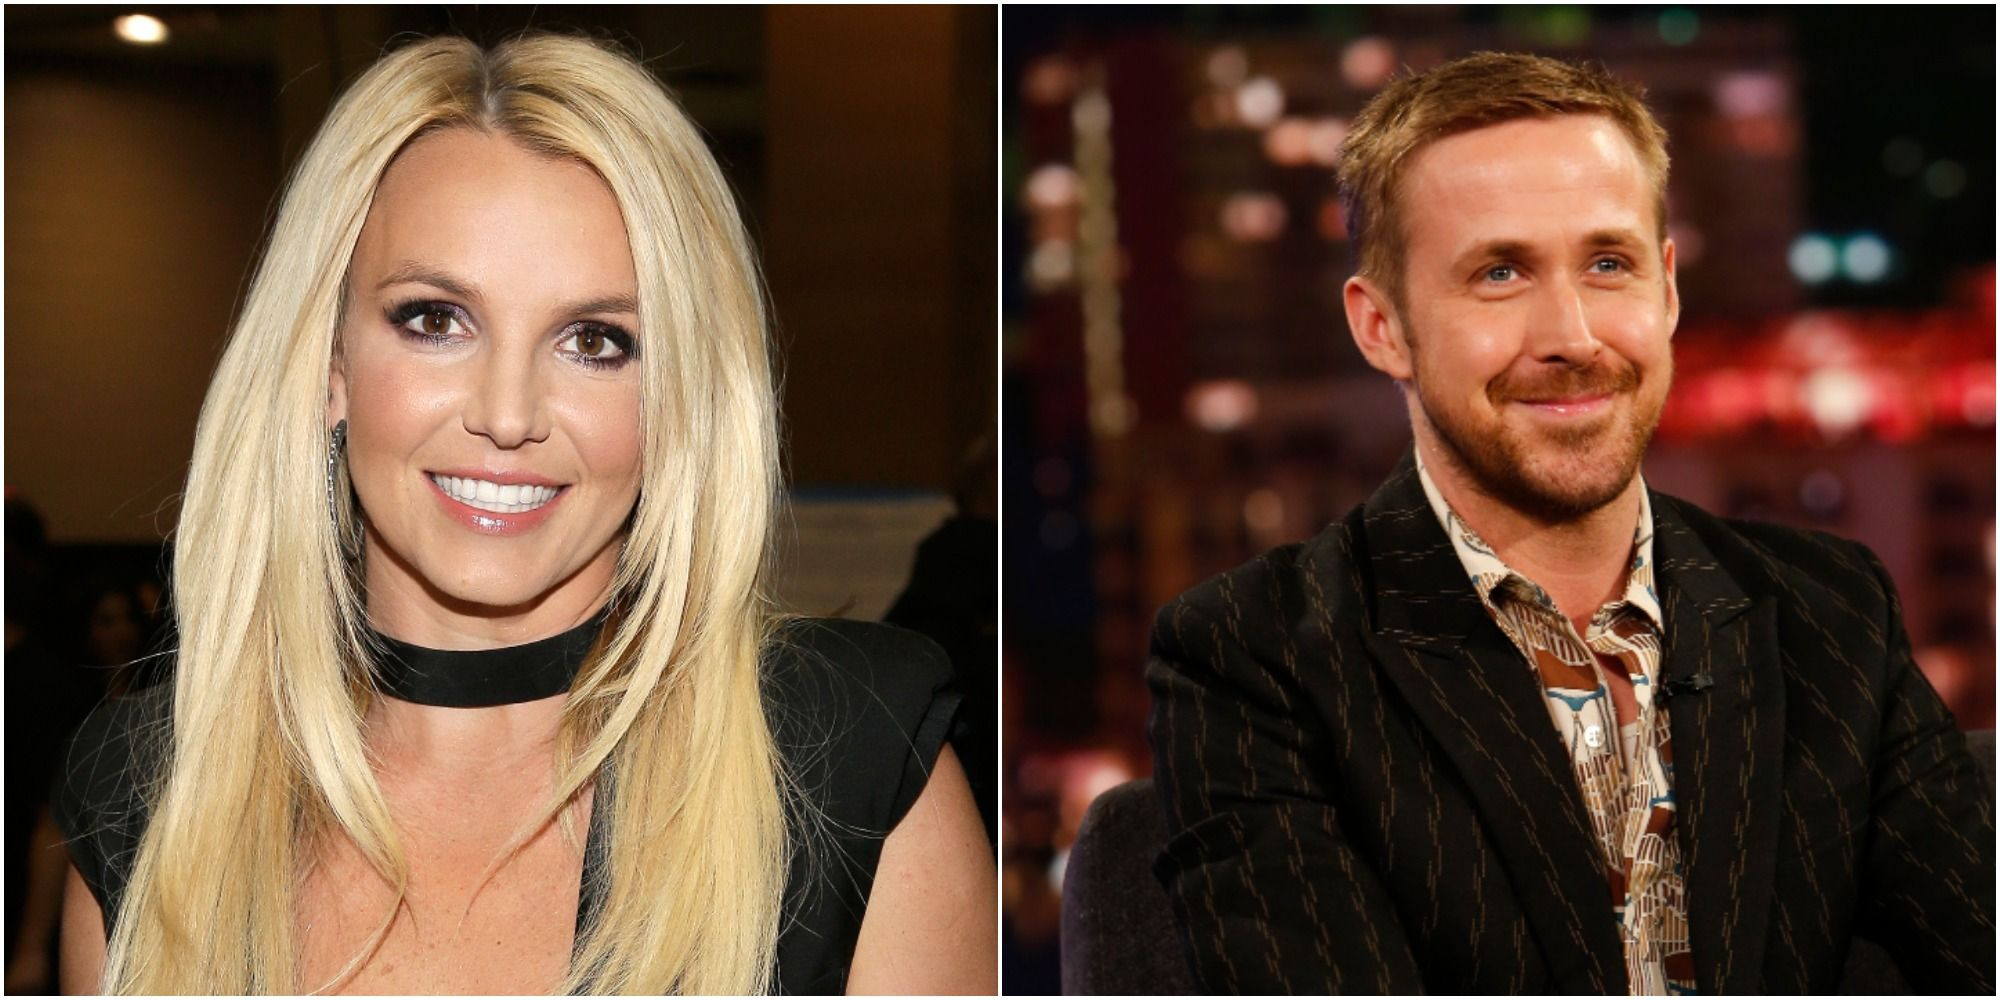 Britney Spears and Ryan Gosling Just Had a 'Mickey Mouse Club' Reunion